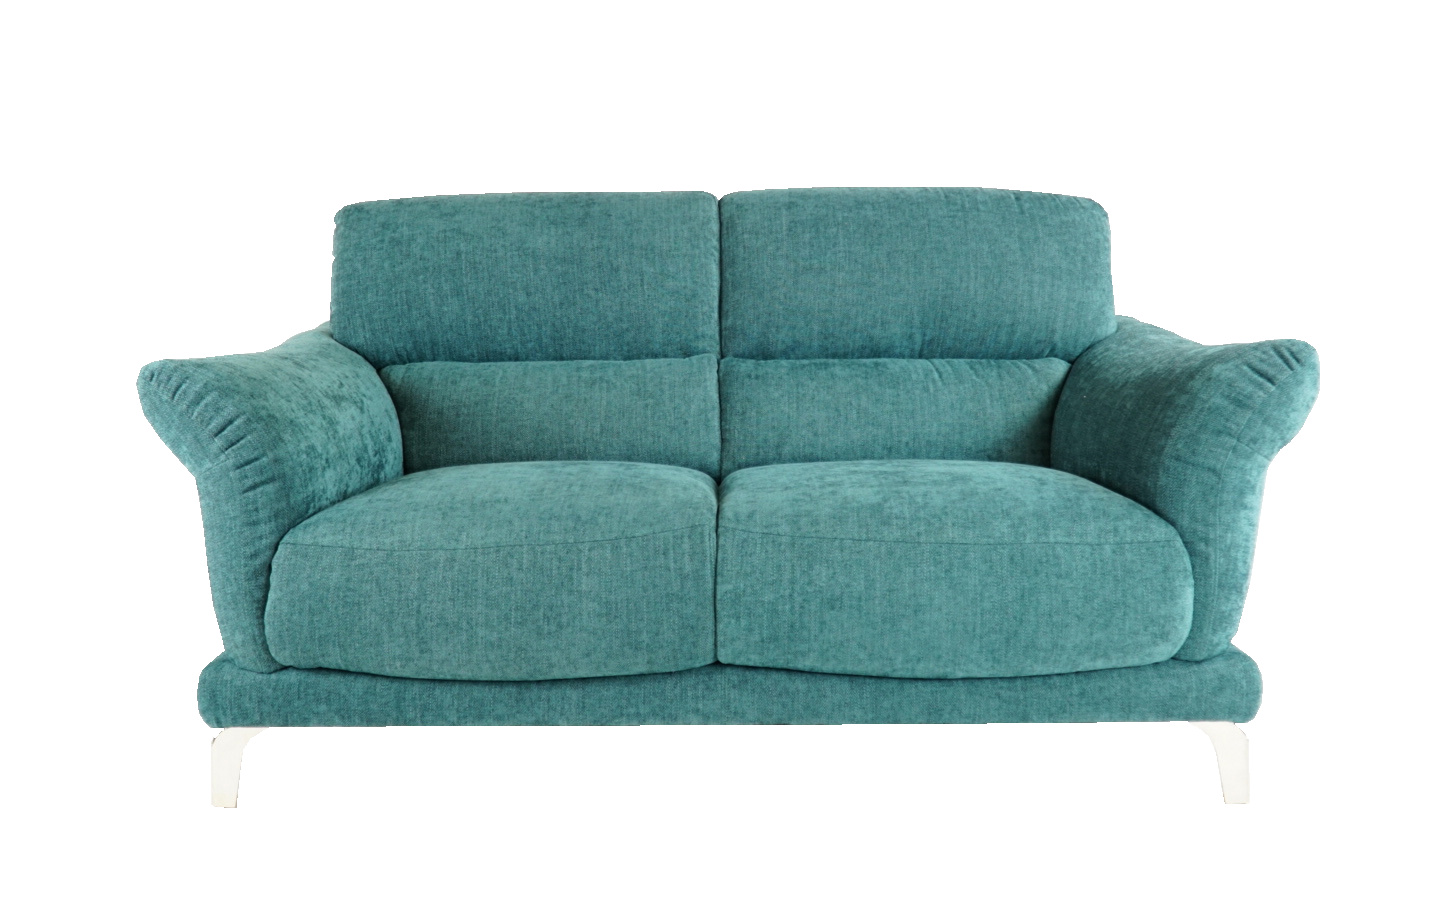 Sierra 2 Seater - OUTLET